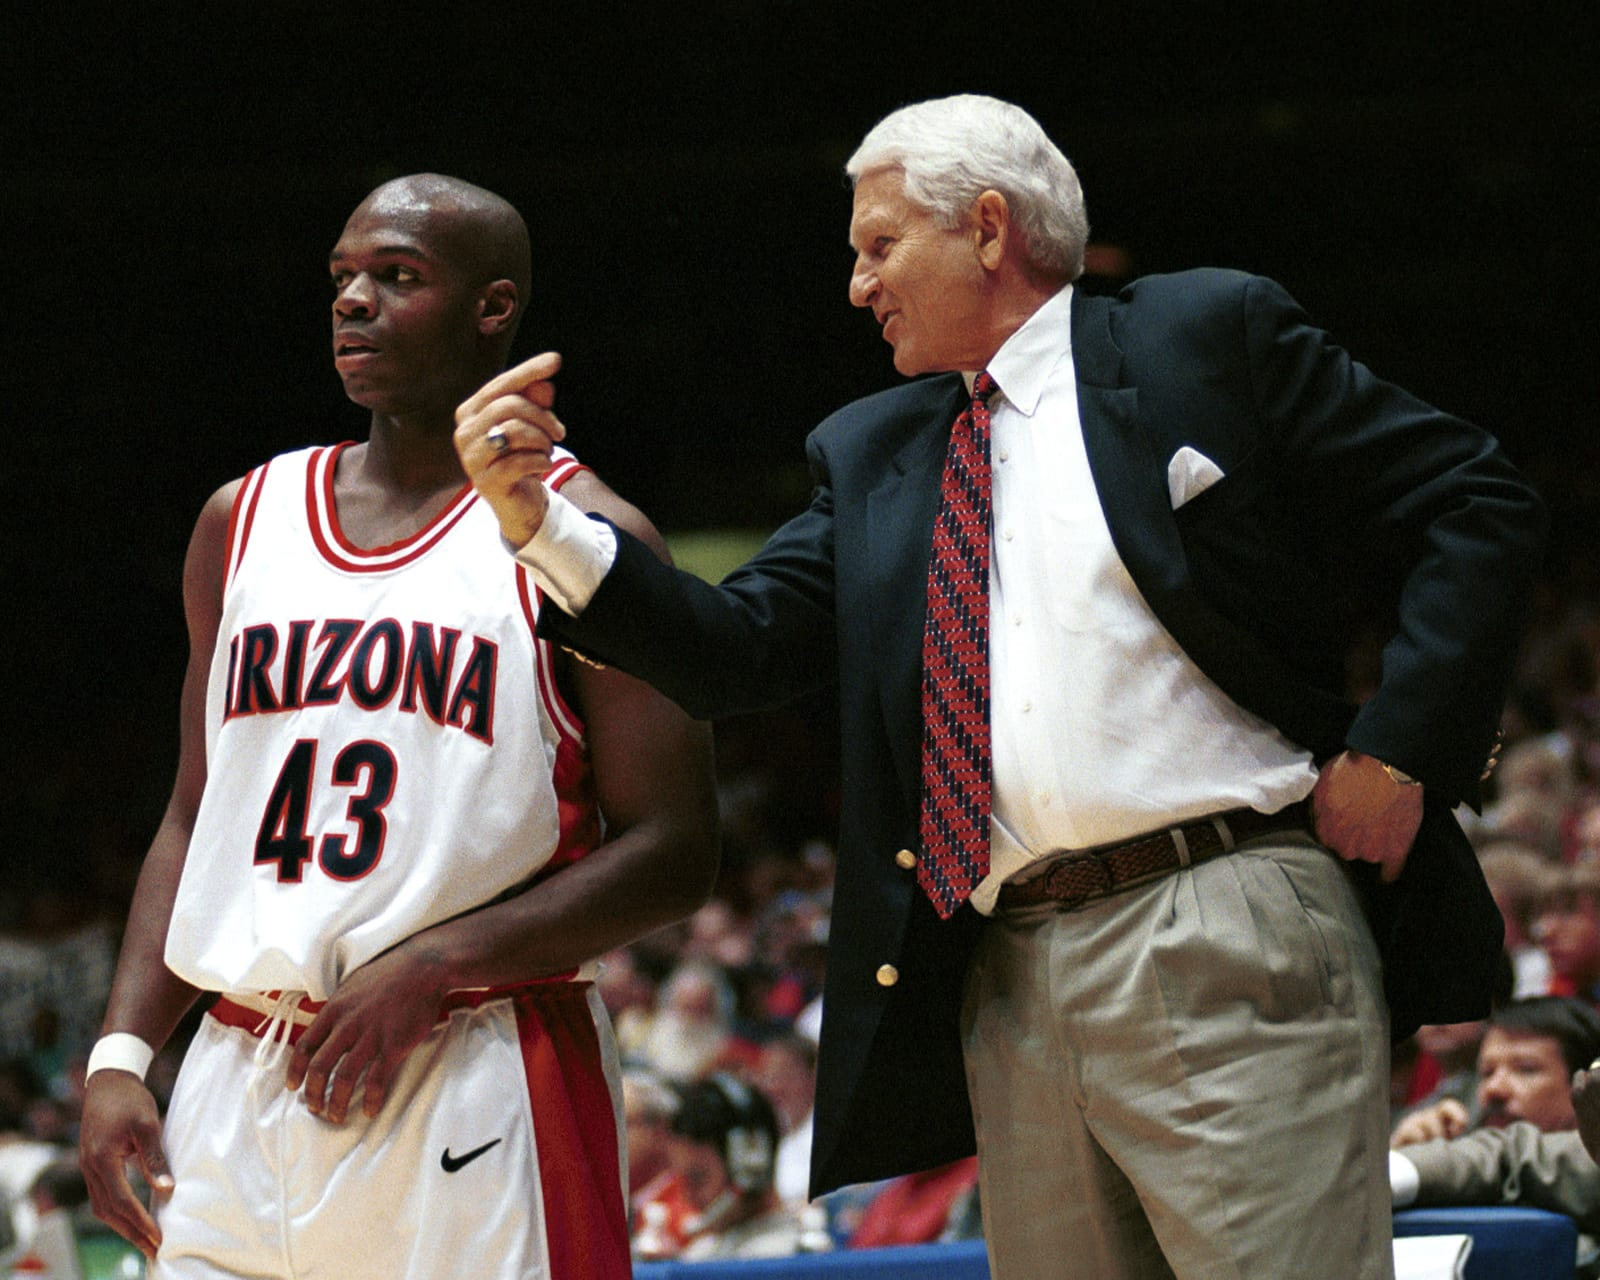 Arizona Basketball: 30 Greatest Wildcats Of All Time